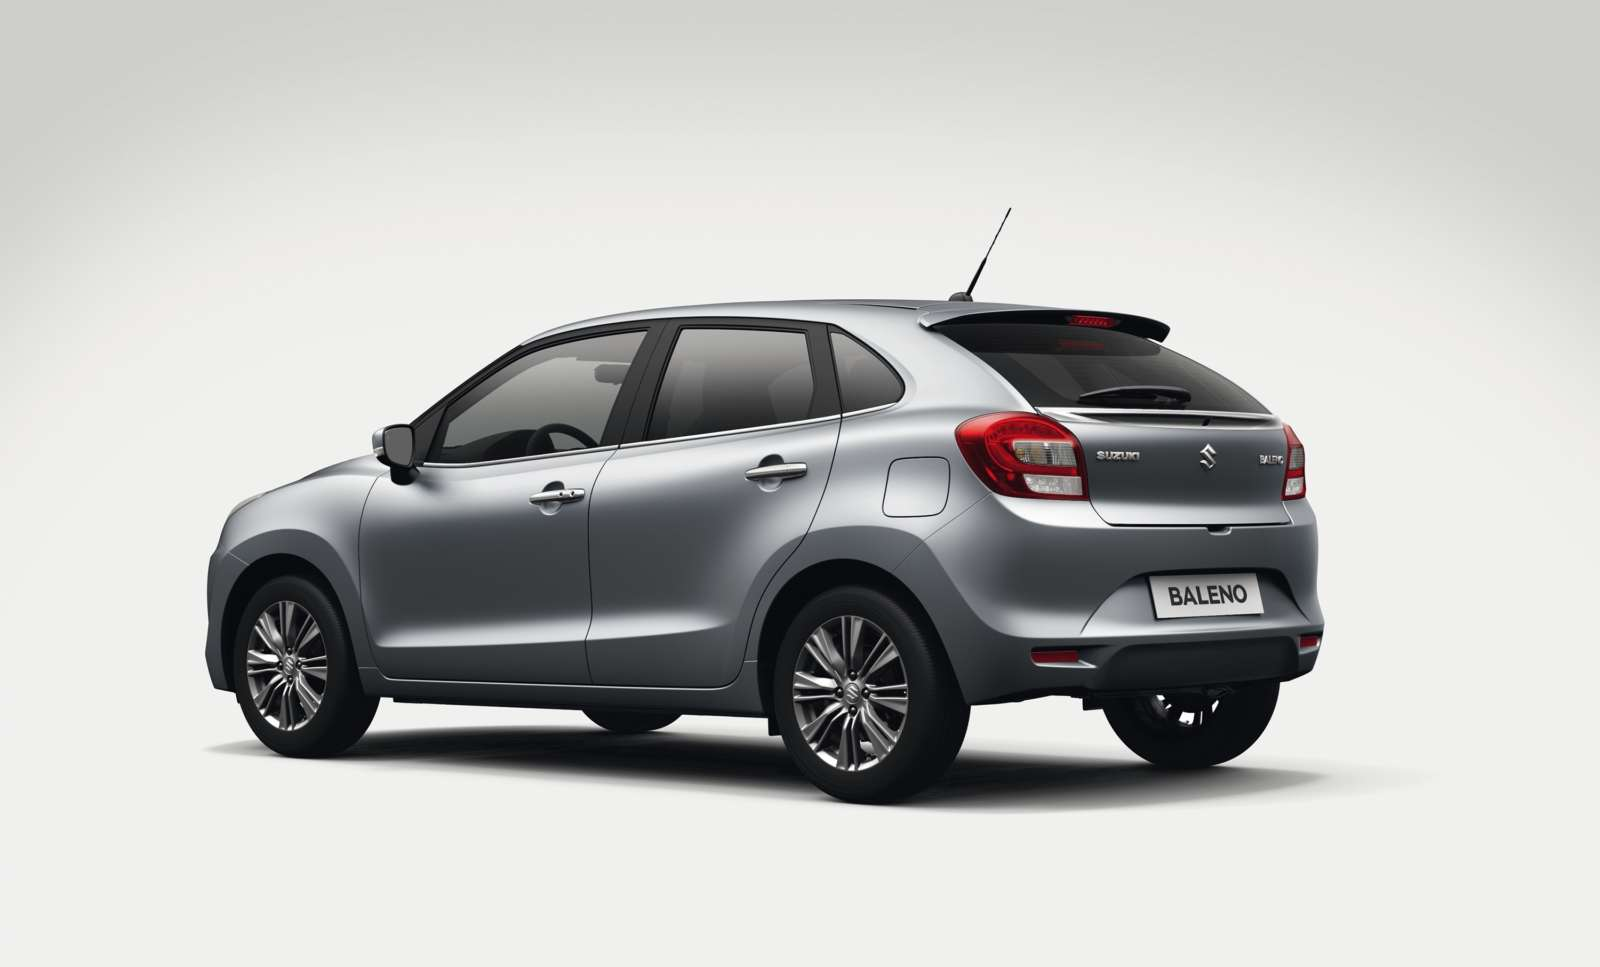 frankfurt motor show 2015 new suzuki baleno revealed gets 110 bhp 1 0 litre turbo petrol